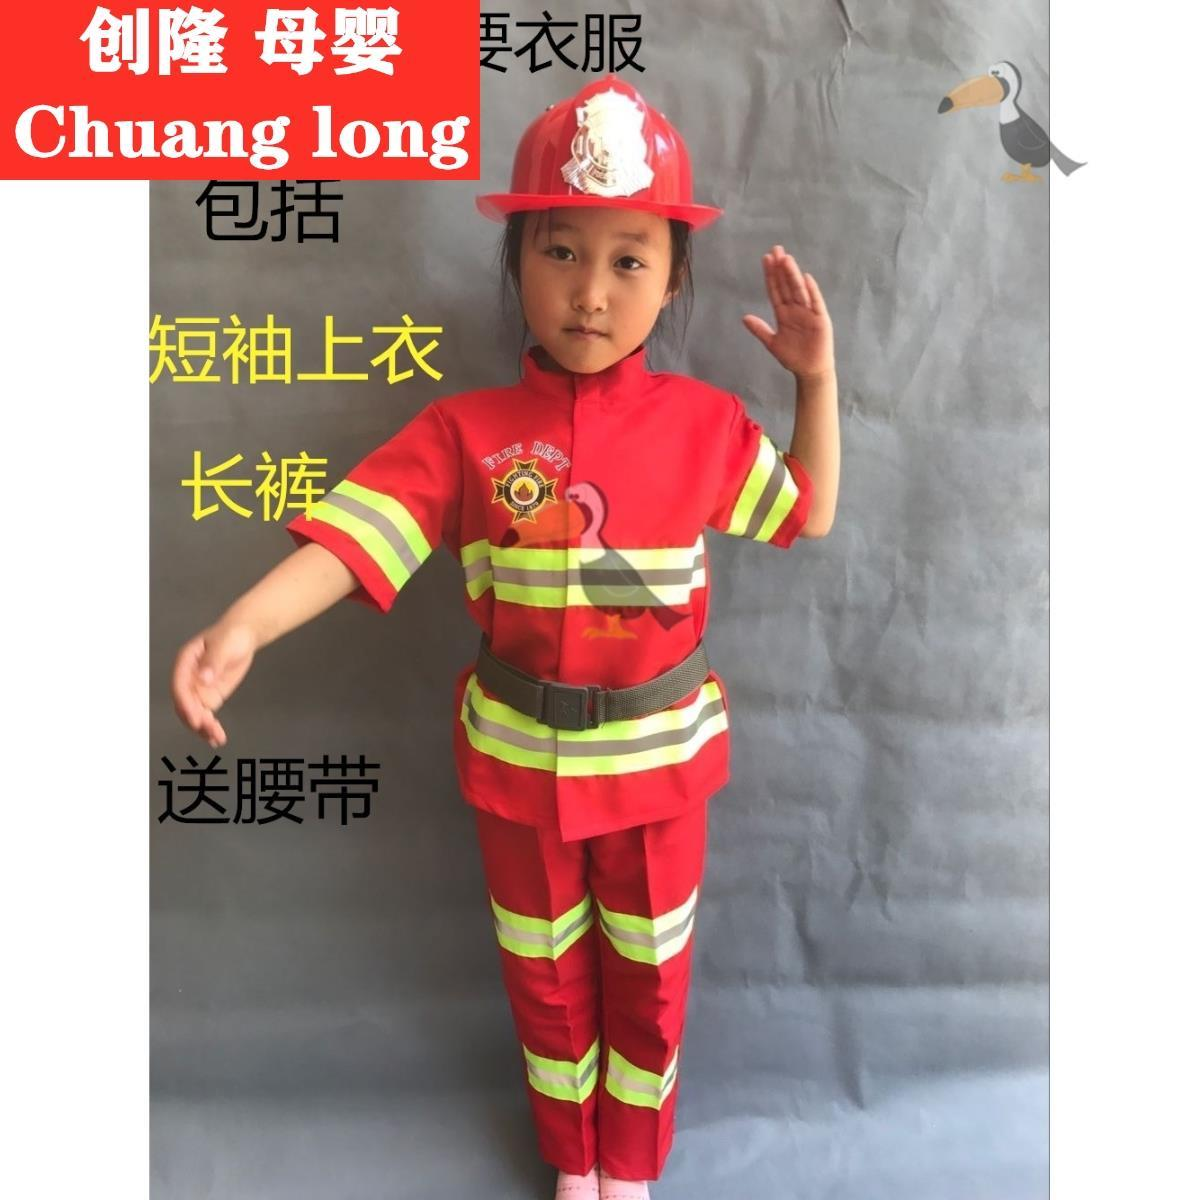 Firemens costume childrens day role play show show parents and children dress up kindergarten men